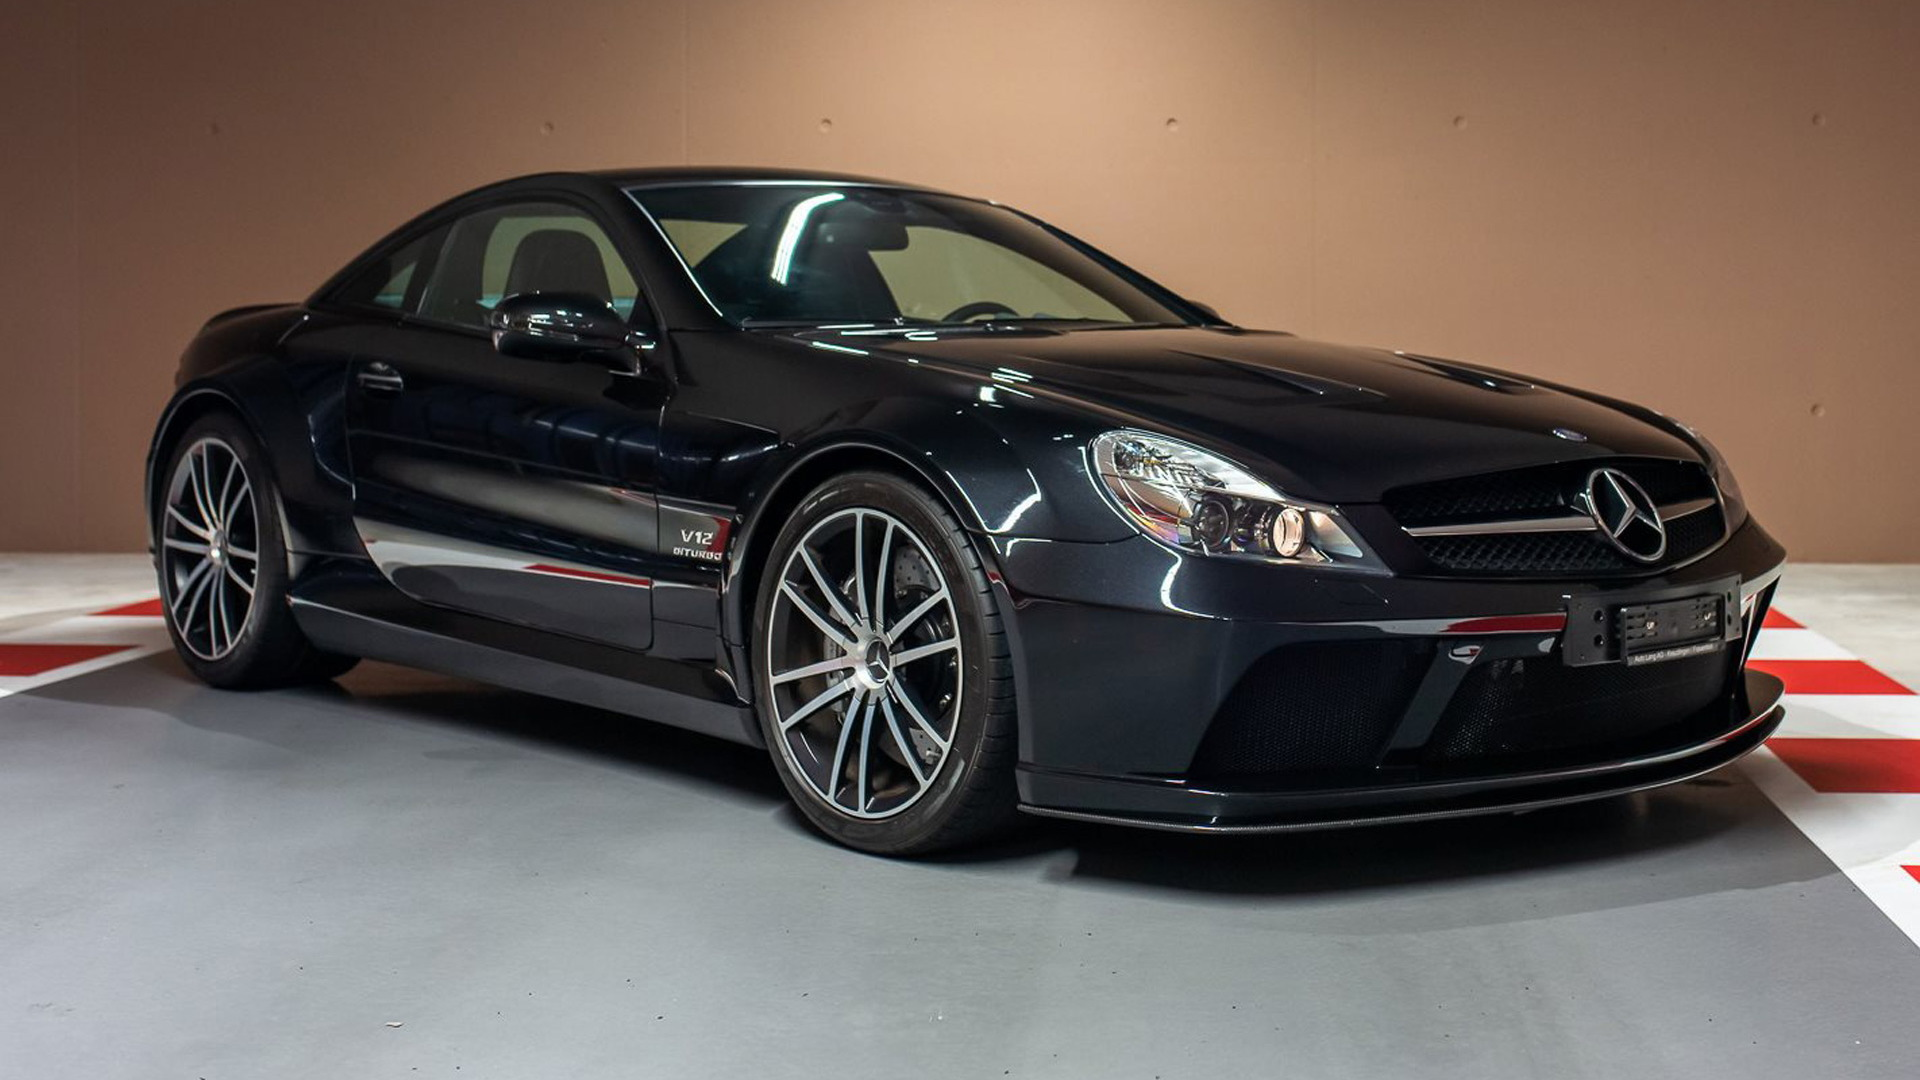 SL65 Black Series once owned by Sebastian Vettel - Photo credit: Which Car/Tom Hartley Jnr